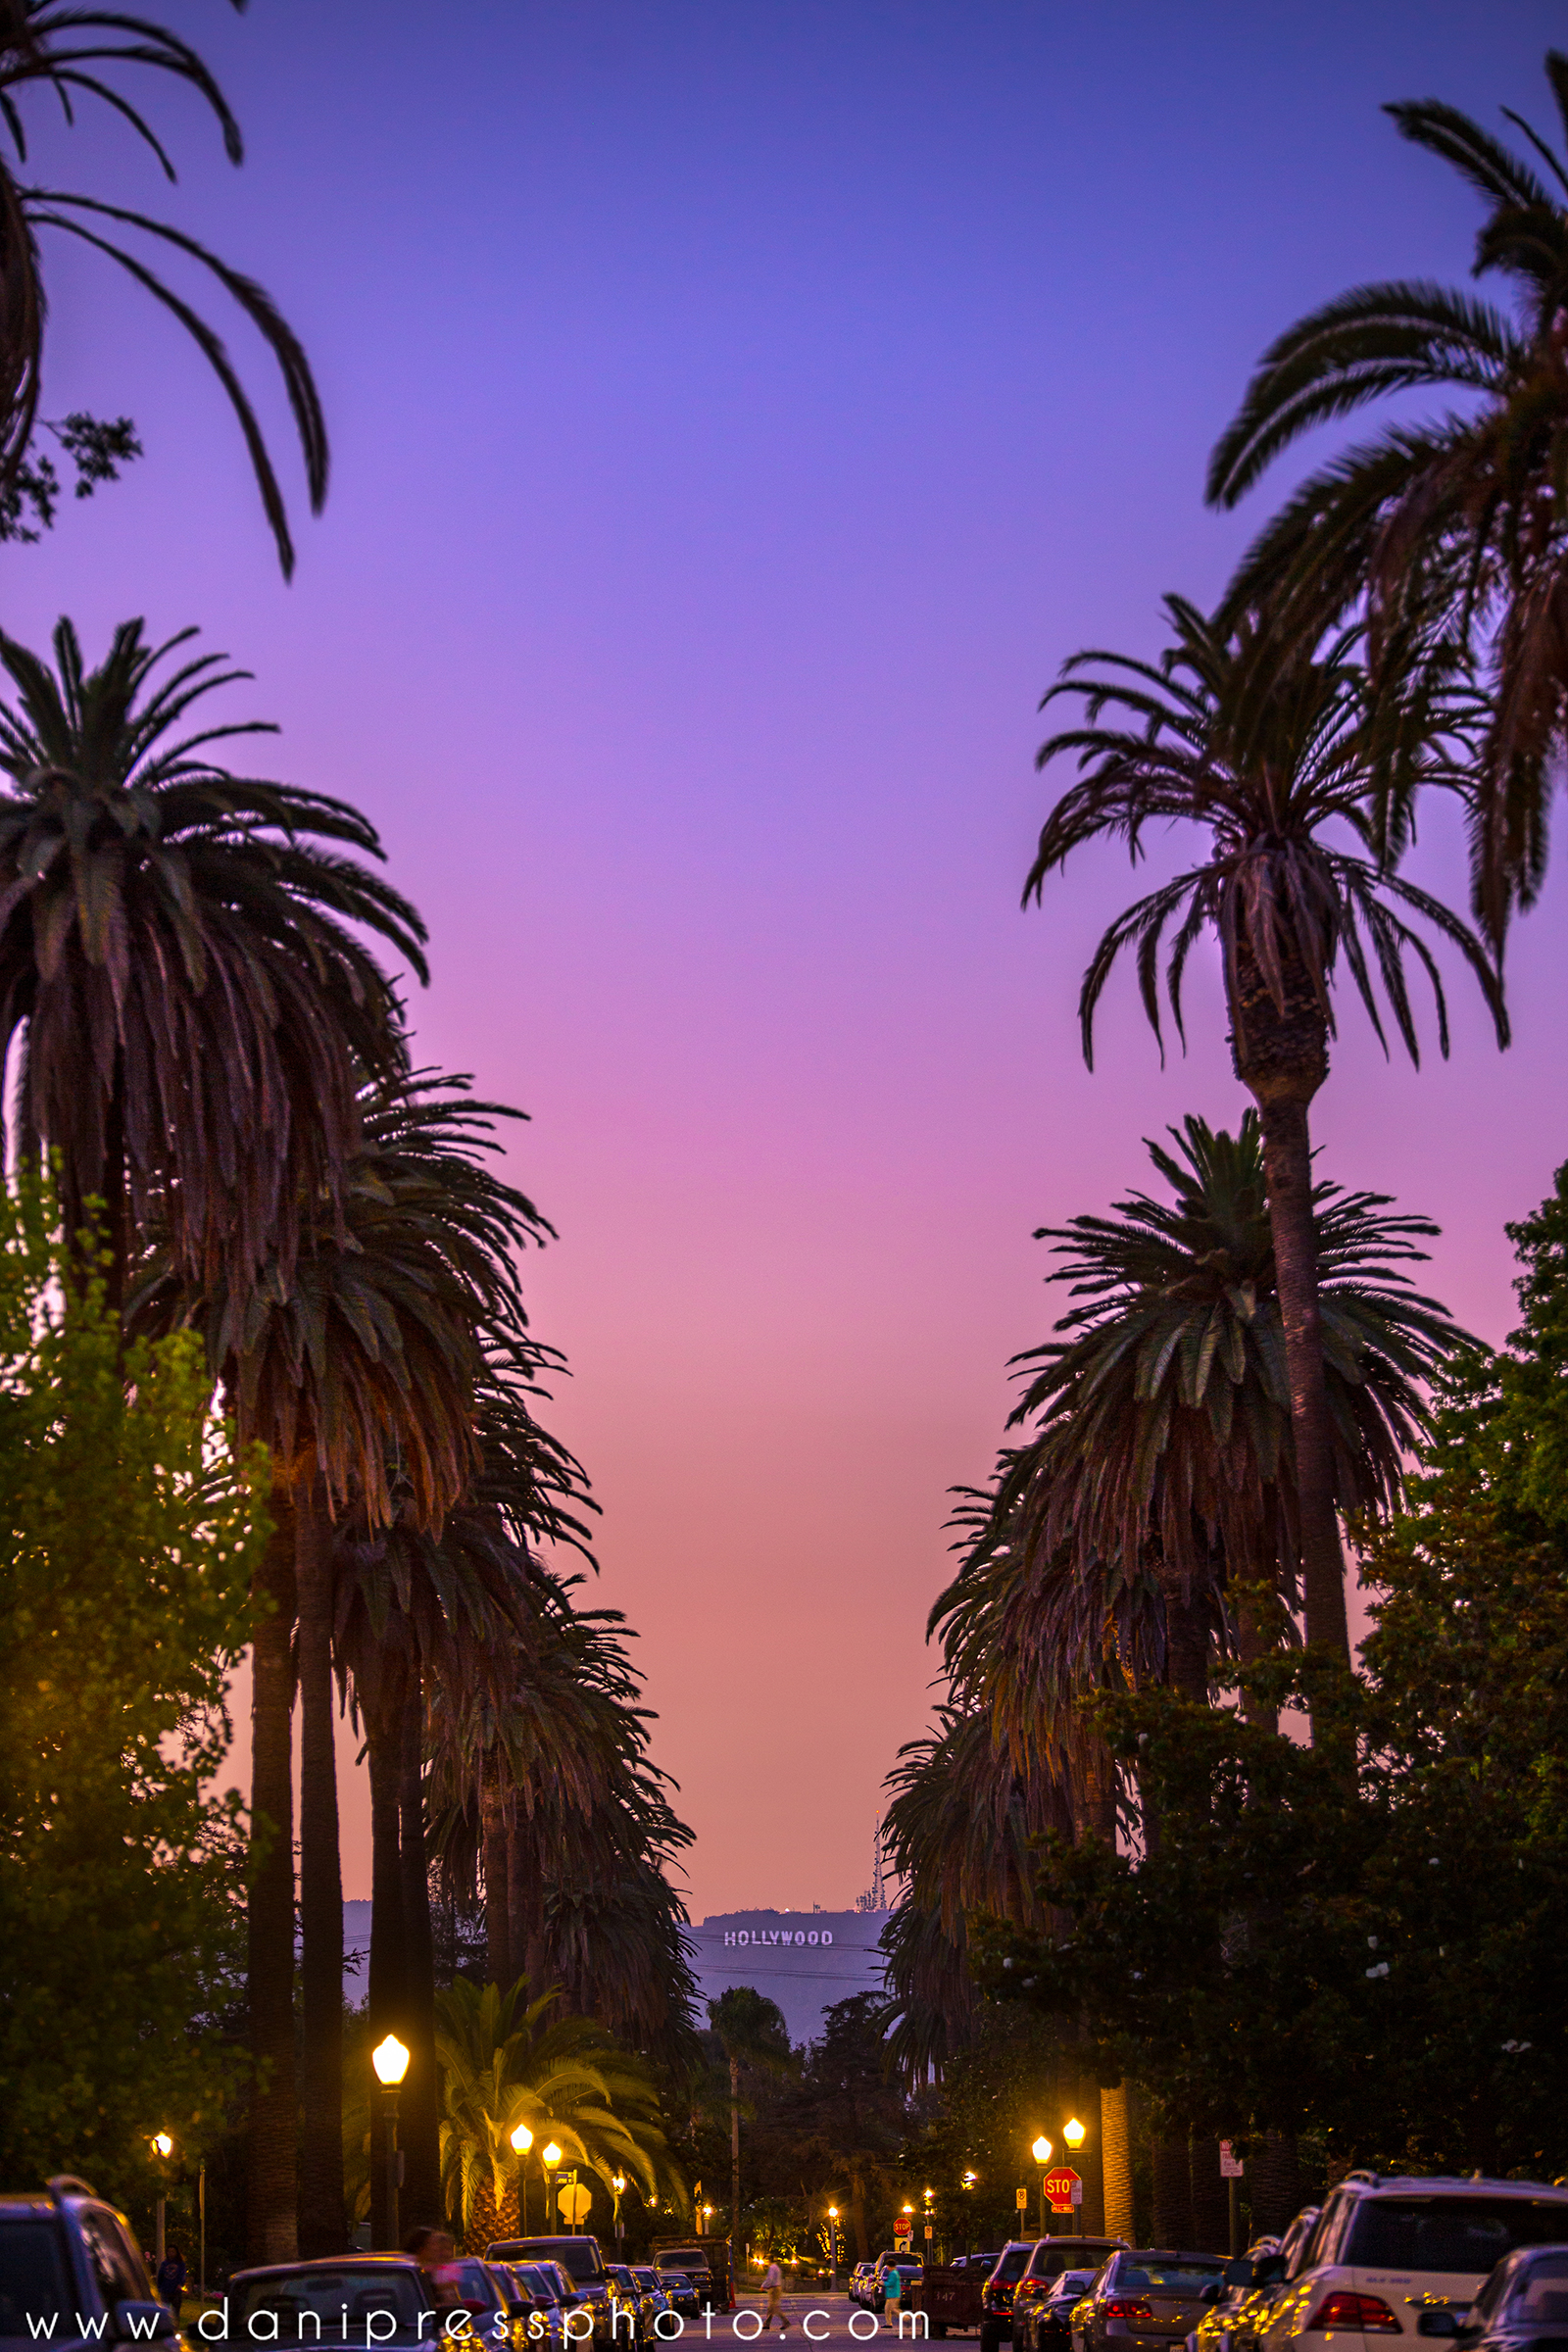 hollywood sign beverly hills los angeles scenic landscape california danielle w lundberg danipress photography.jpg